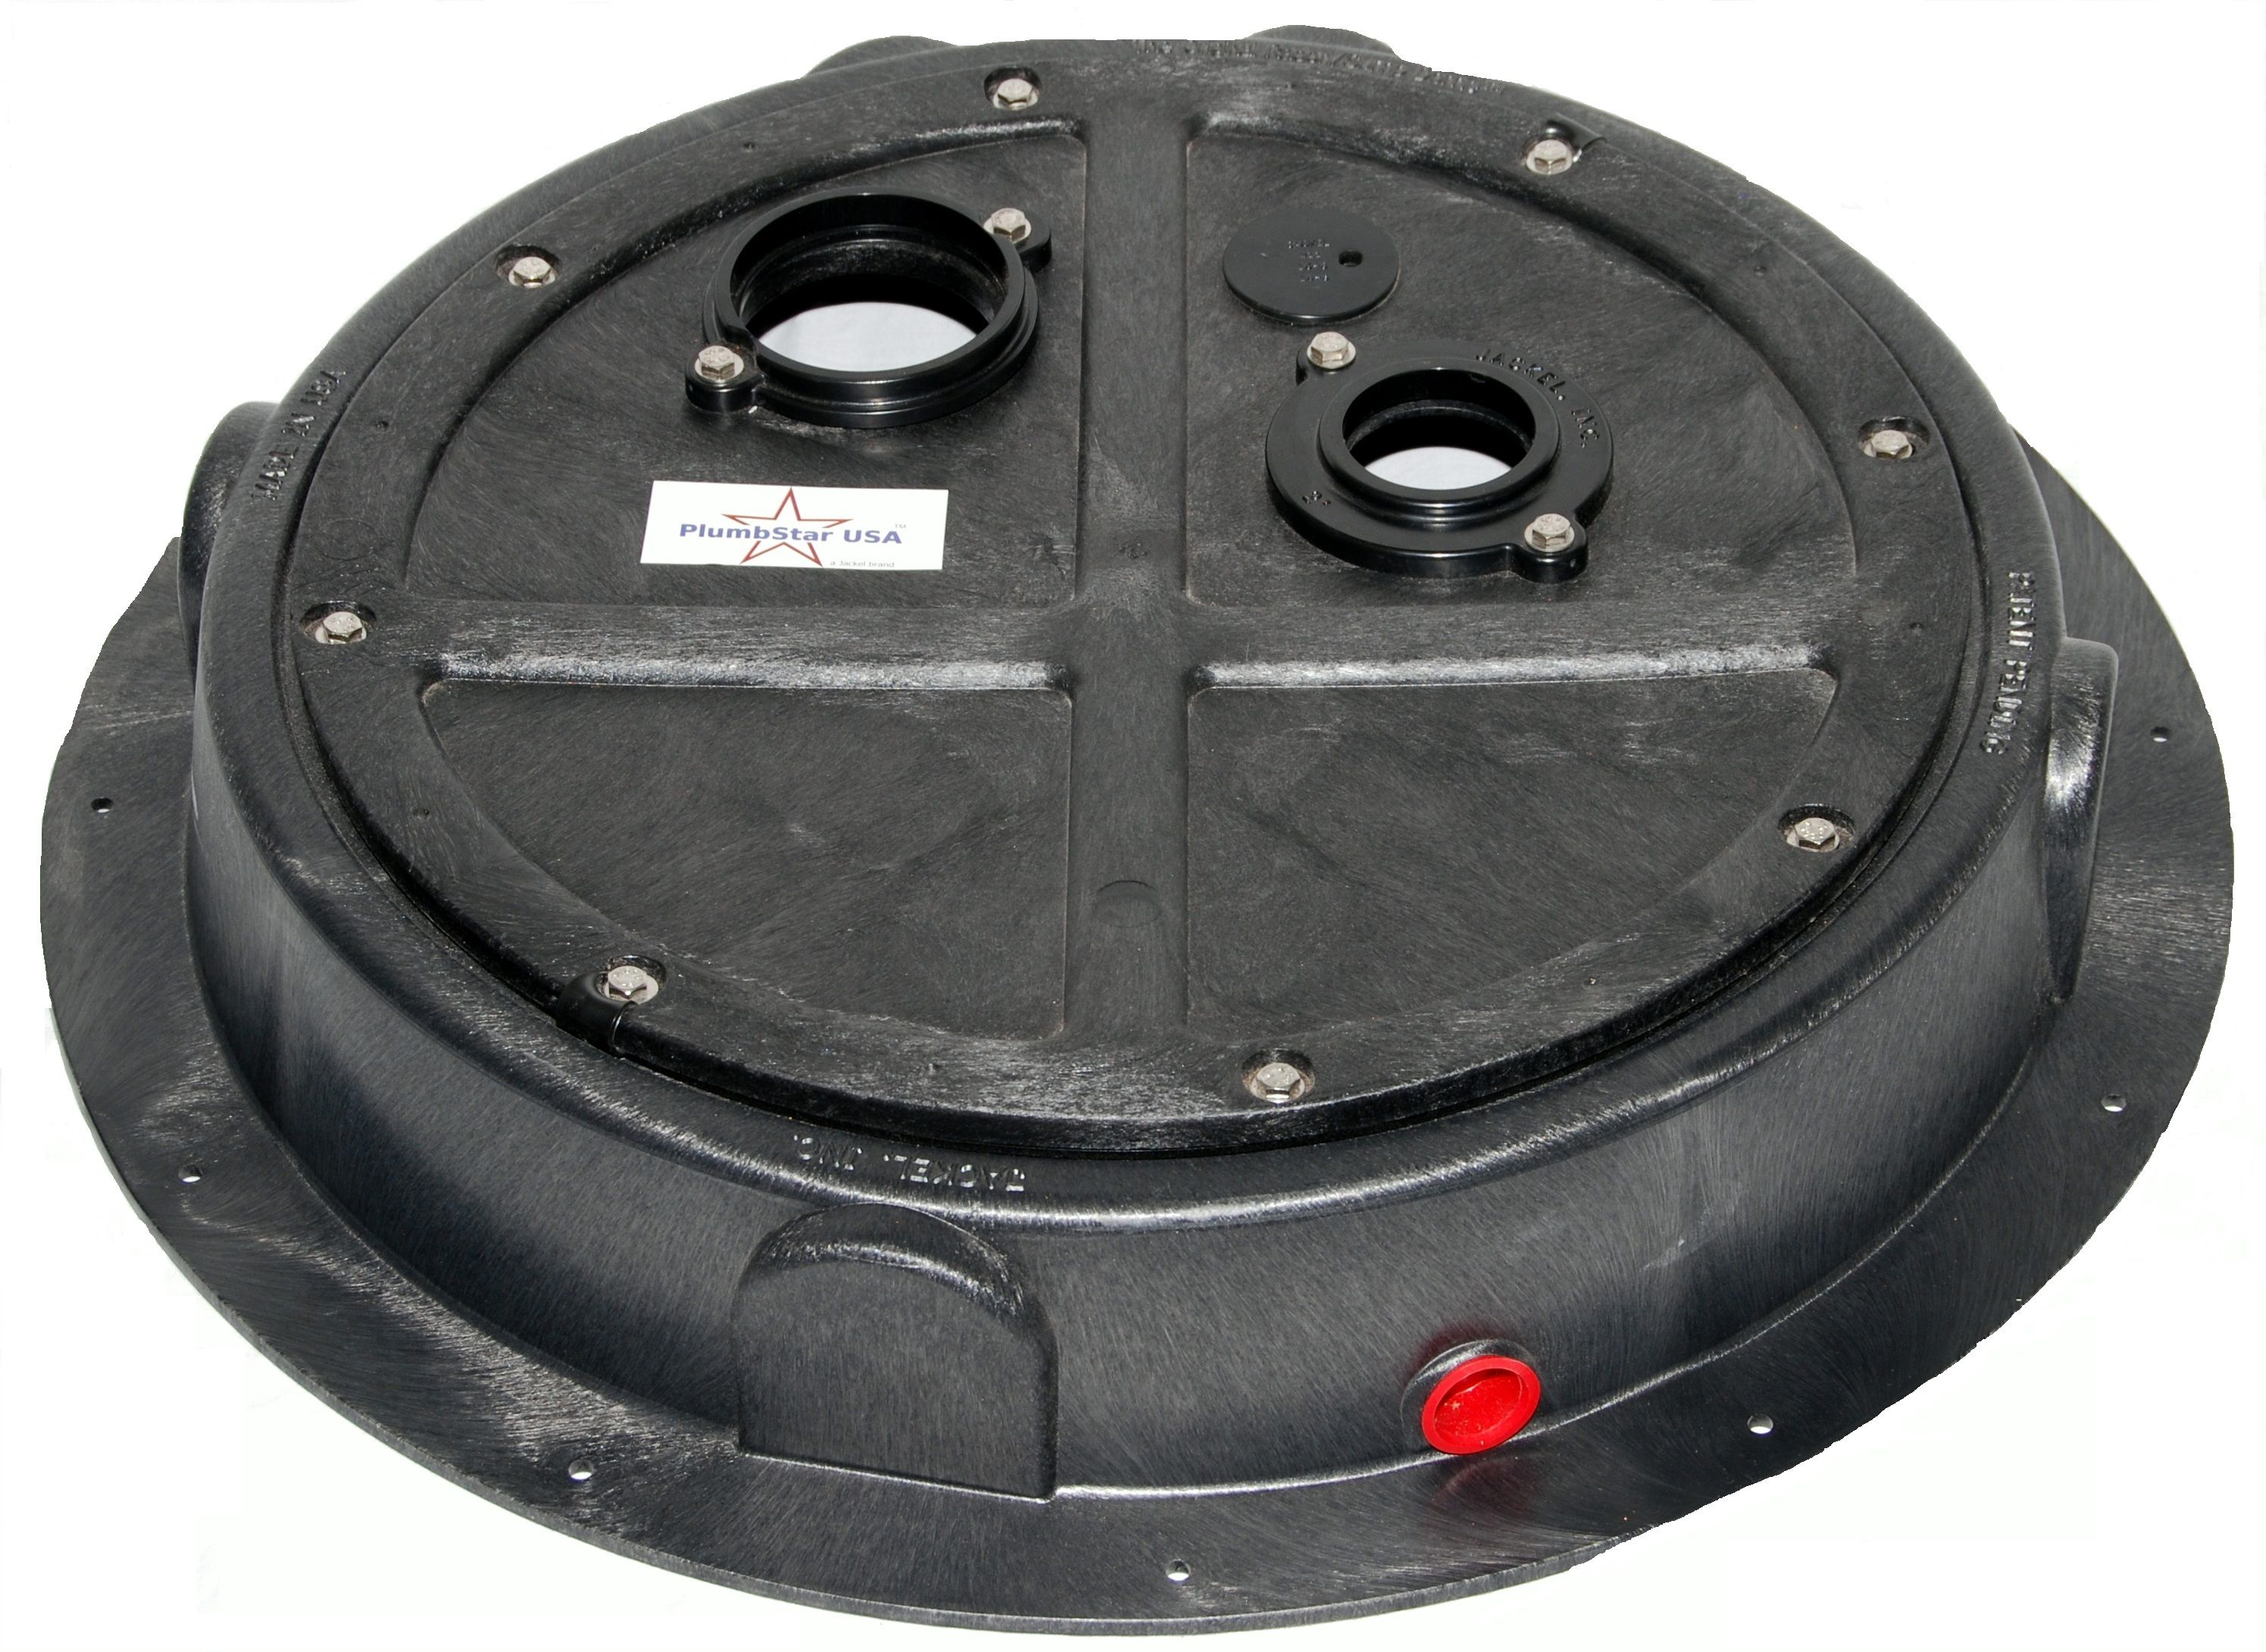 Our Plumbstar Usa Original Radon Sump Dome Covers A Sump Or Sewage Pit And Allows For Access To The Pump When It Needs To Be Sump Pump Sump Radon Mitigation Diy